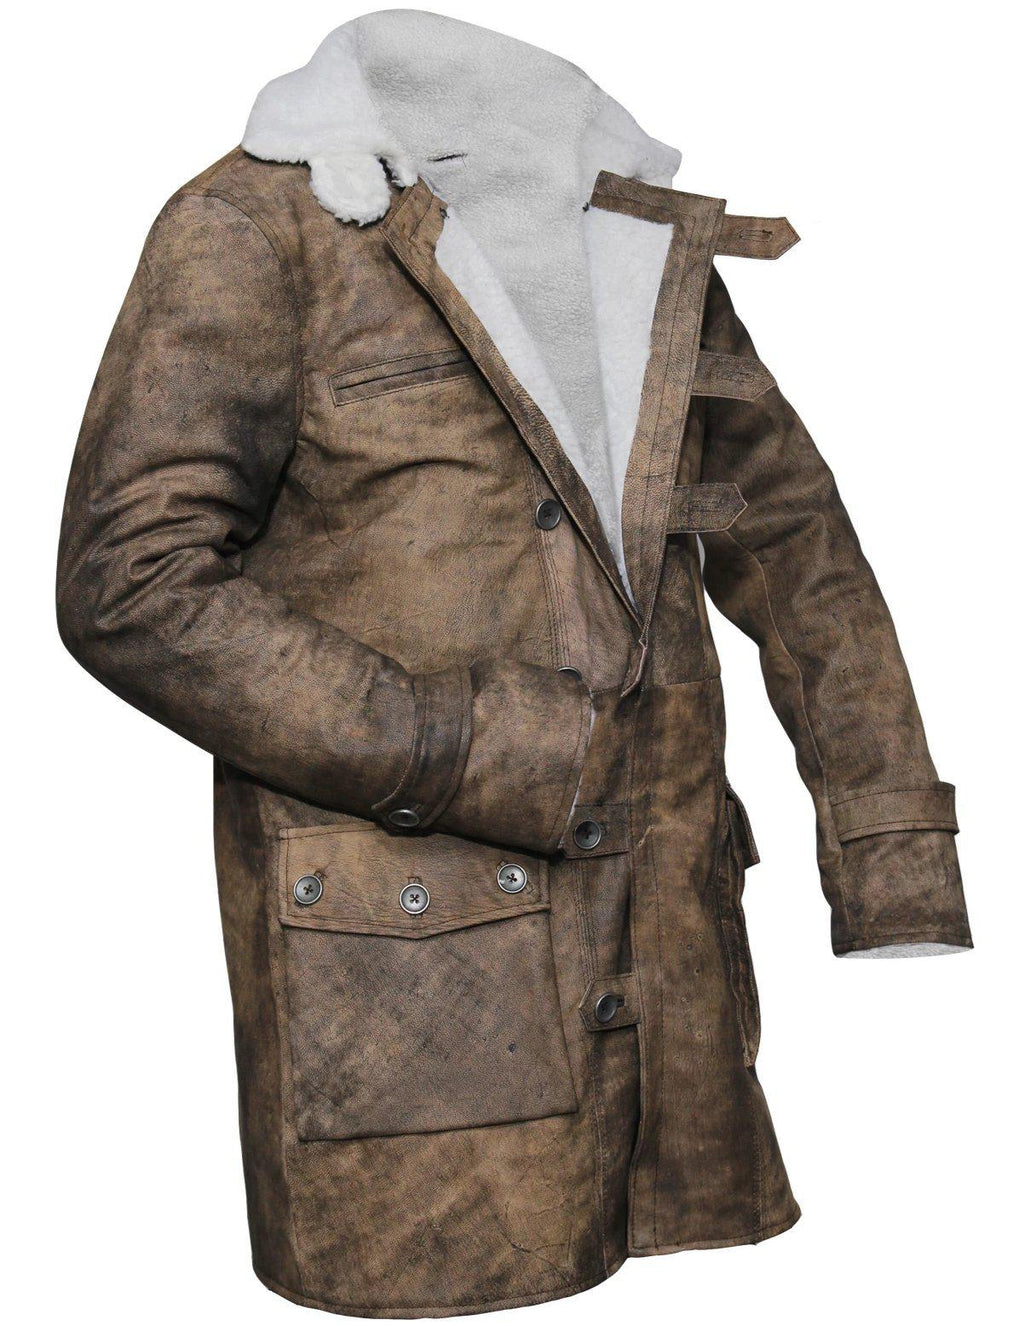 Men's Batman The Dark Knight Rises Tom Hardy Bane Distressed Brown Leather Coat Fur LIned